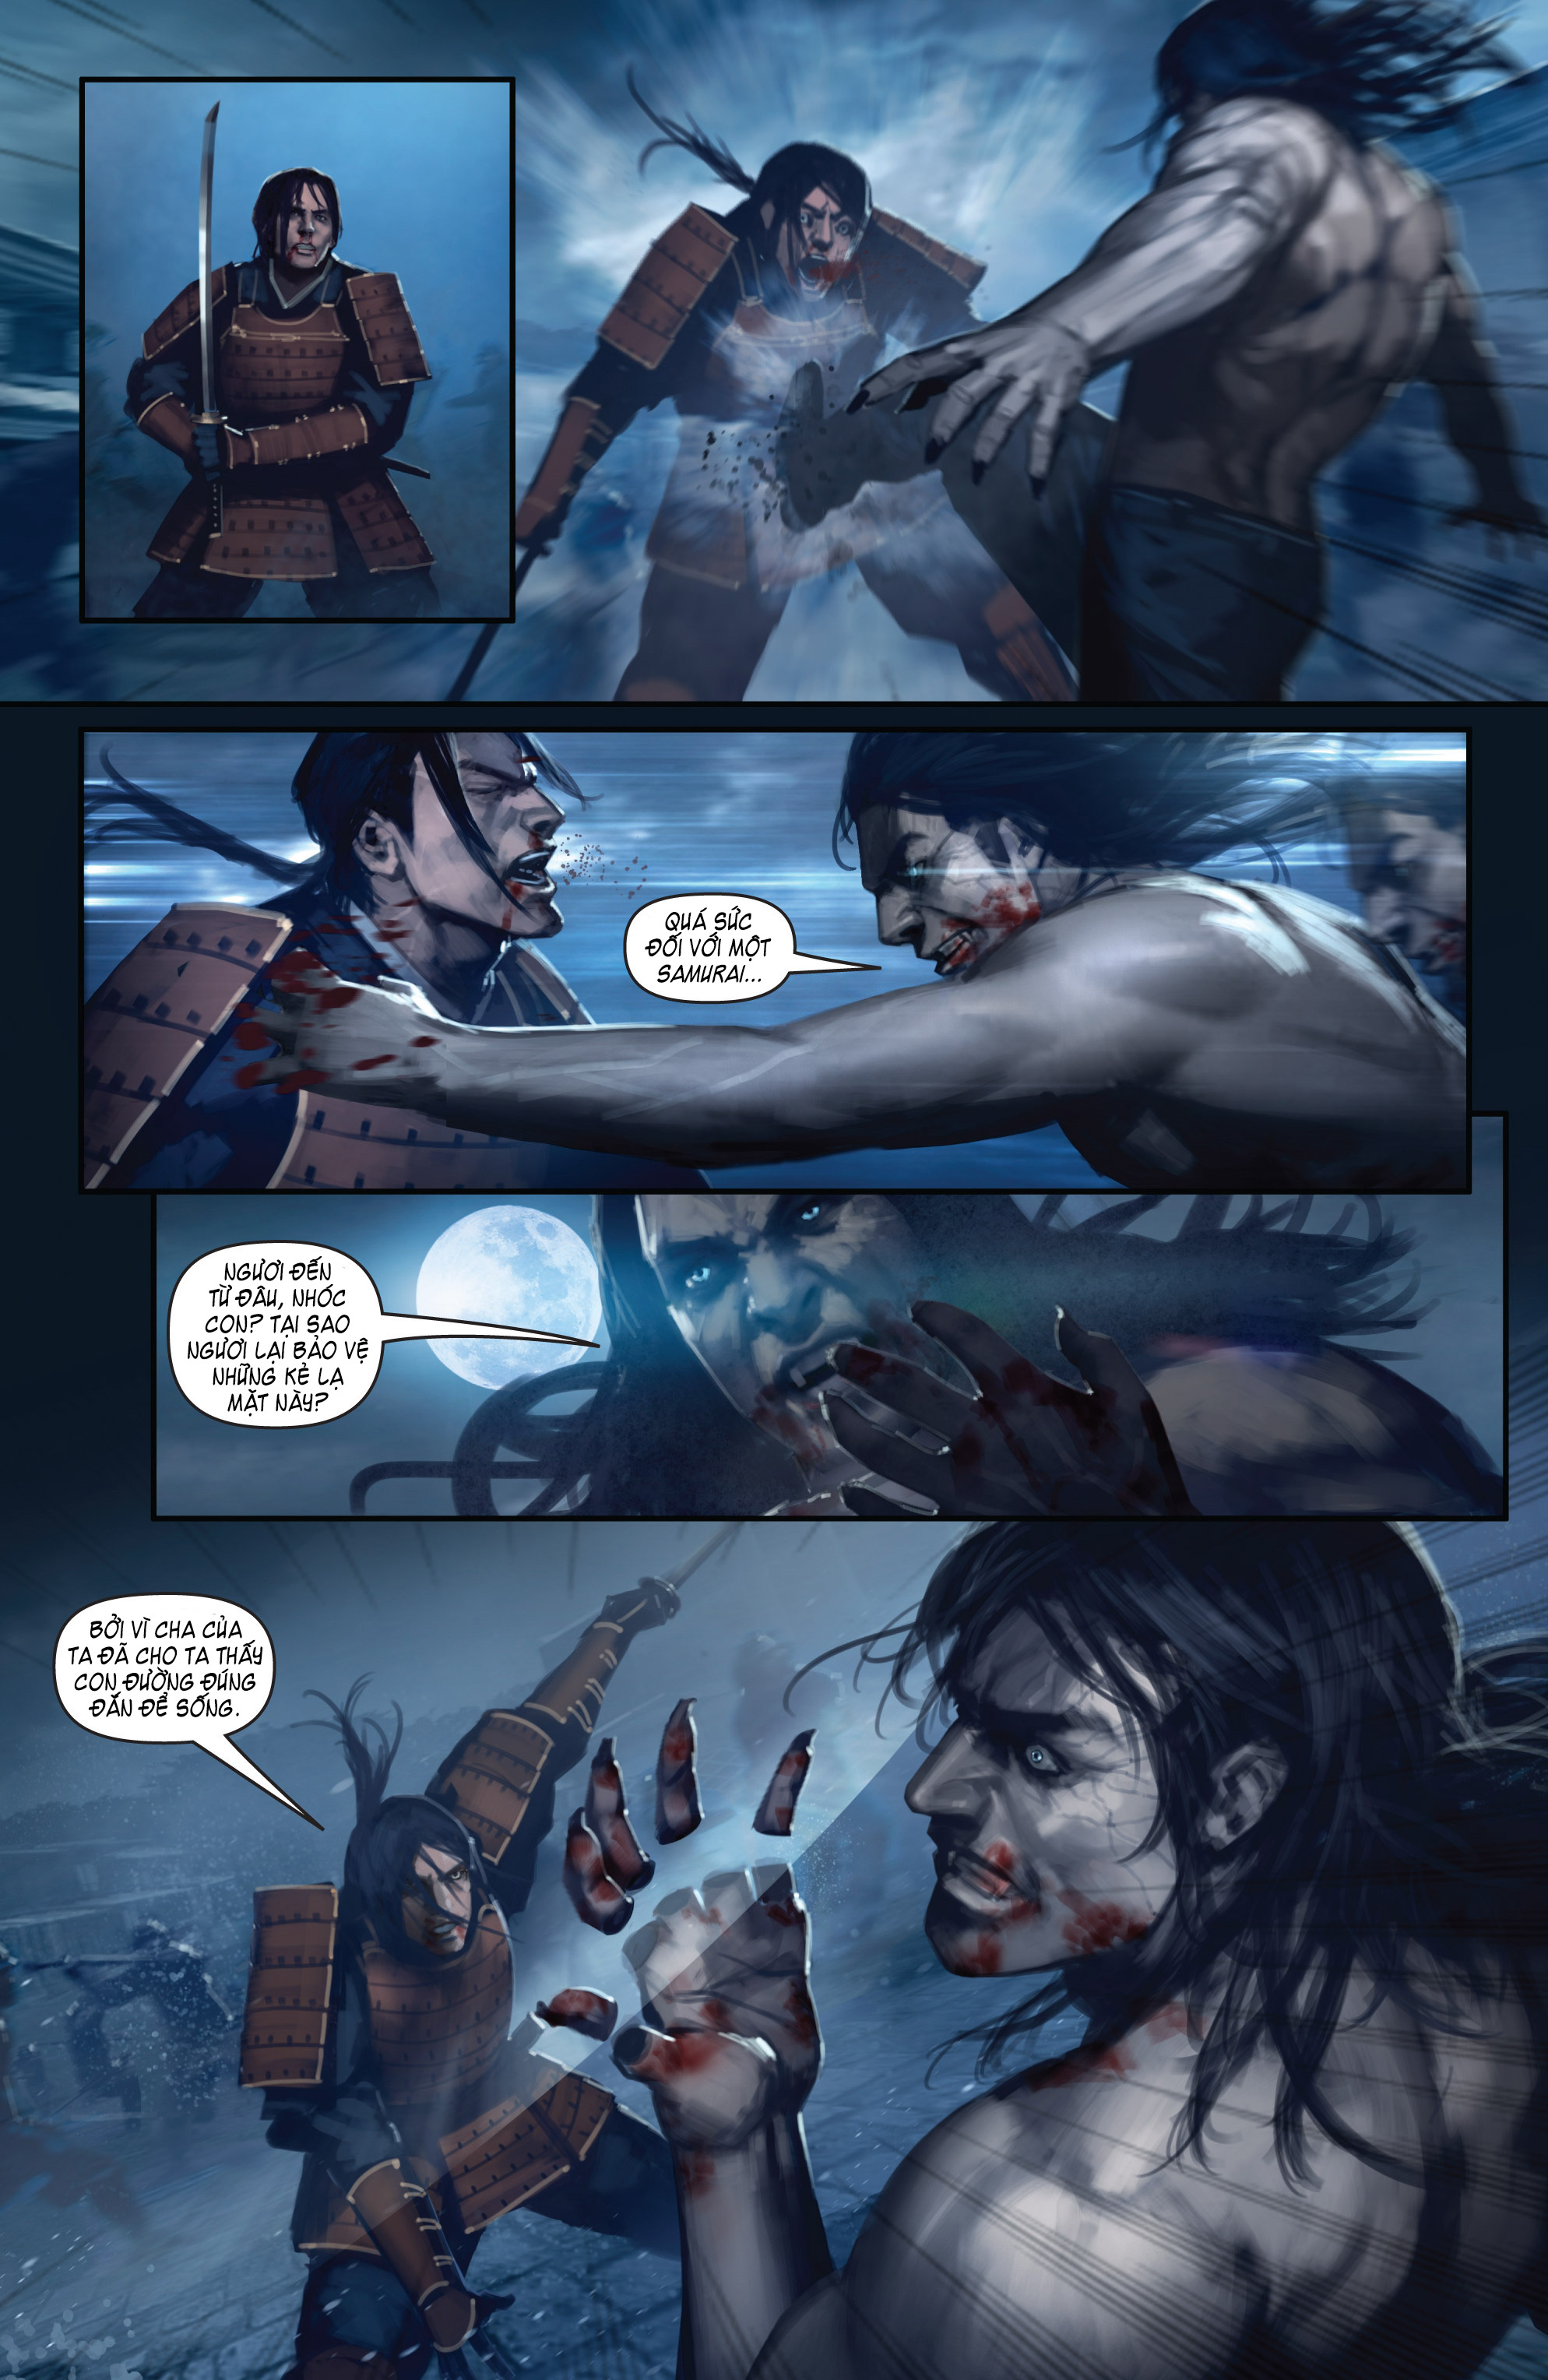 BUSHIDO - THE WAY OF THE WARRIOR chapter 5 - end trang 19